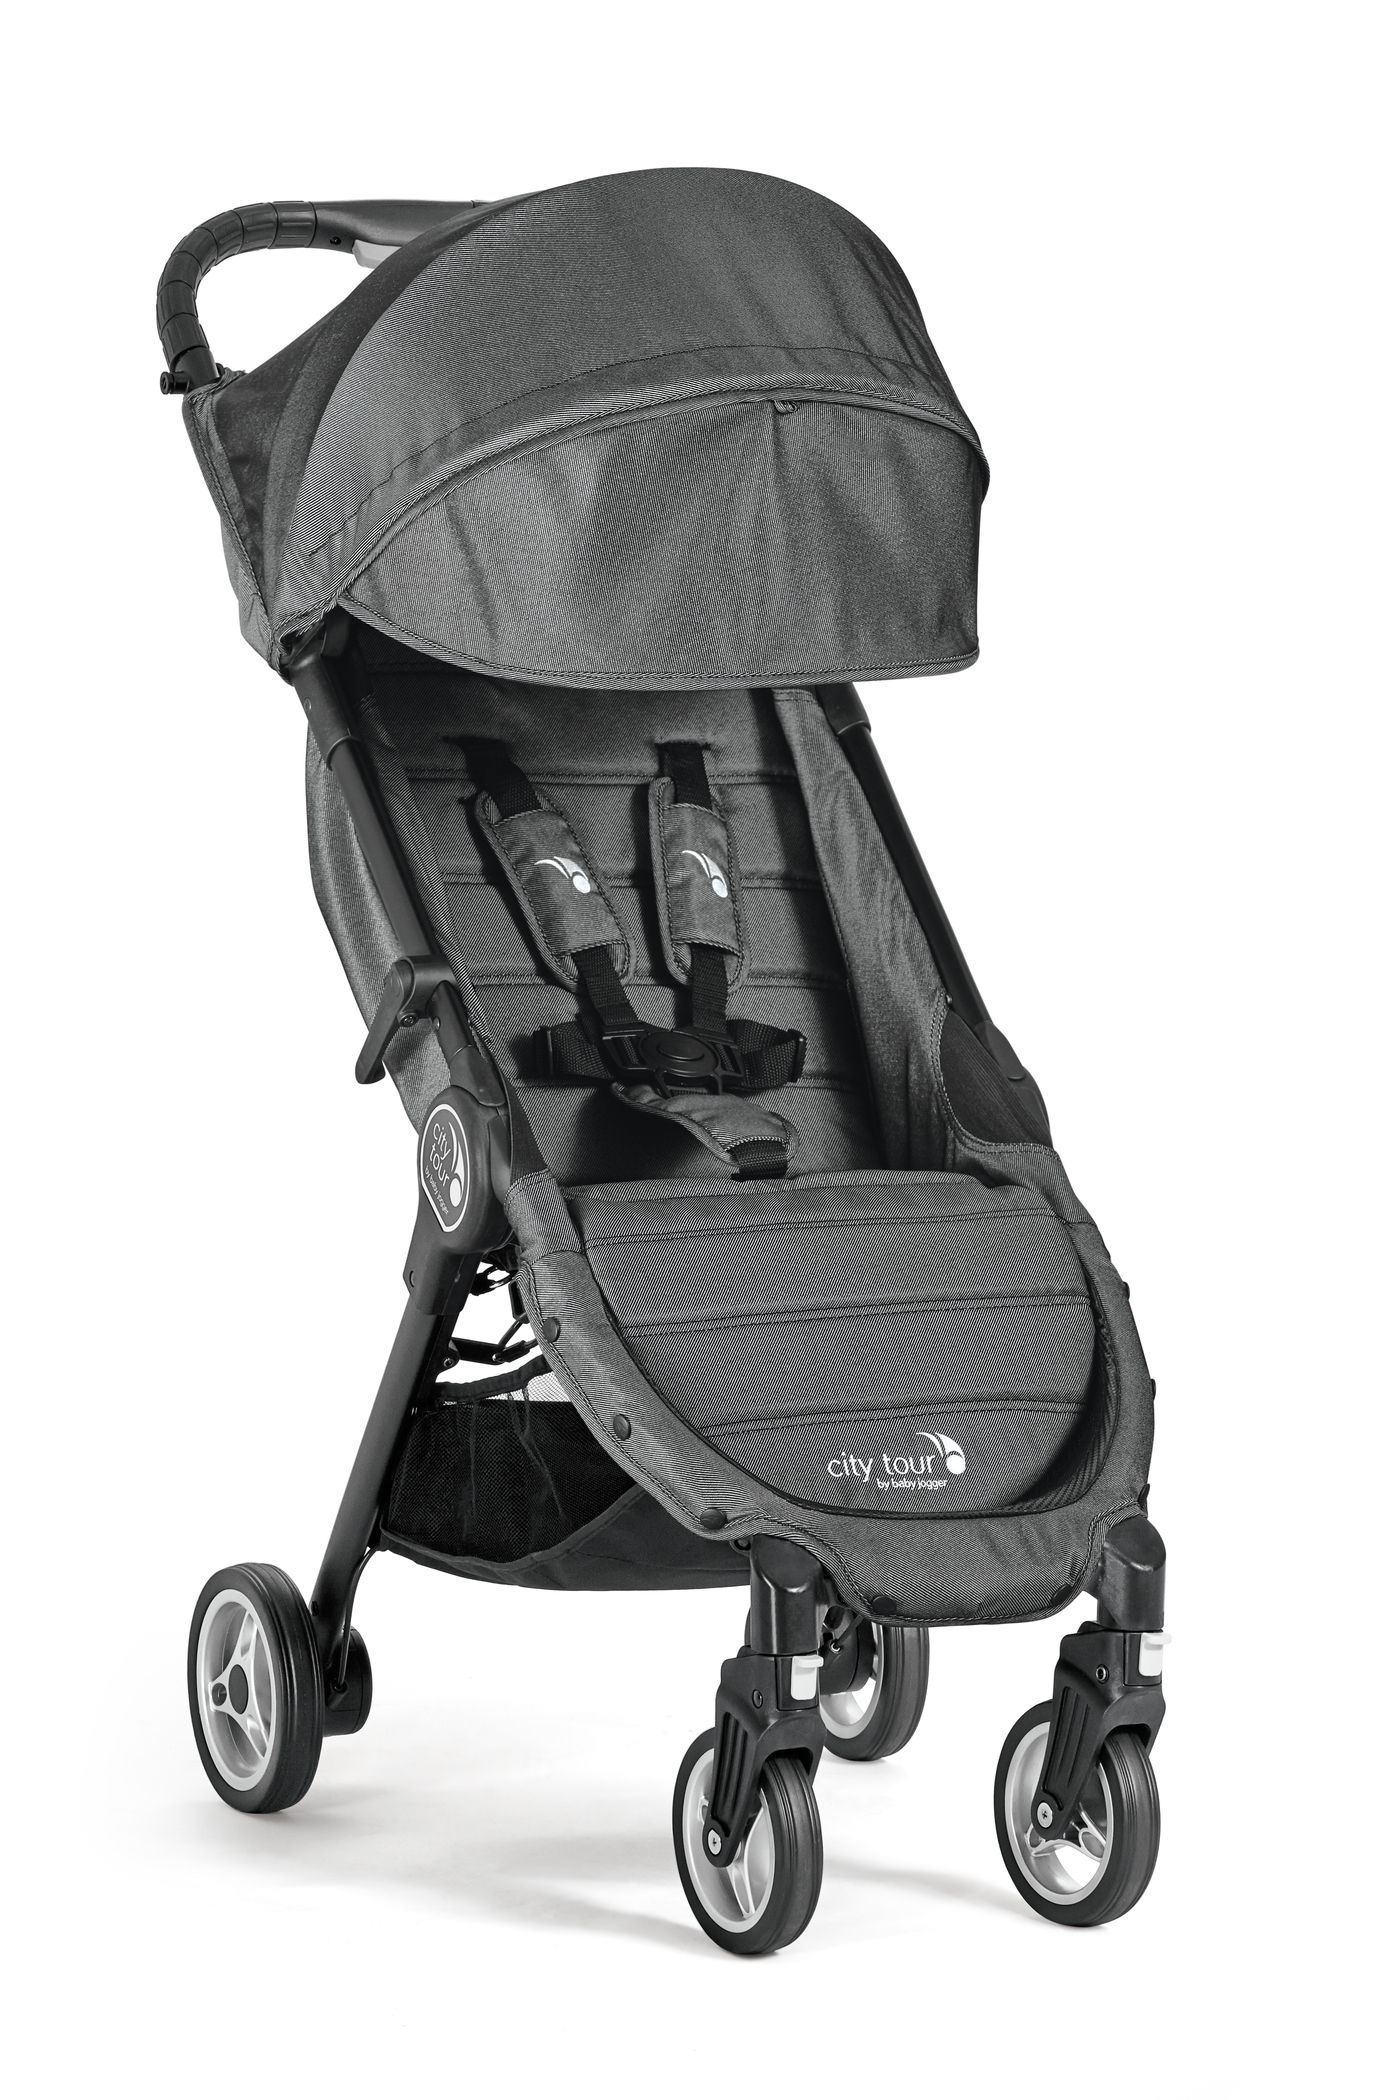 Buy City Tour - The newest addition to the Baby Jogger ...